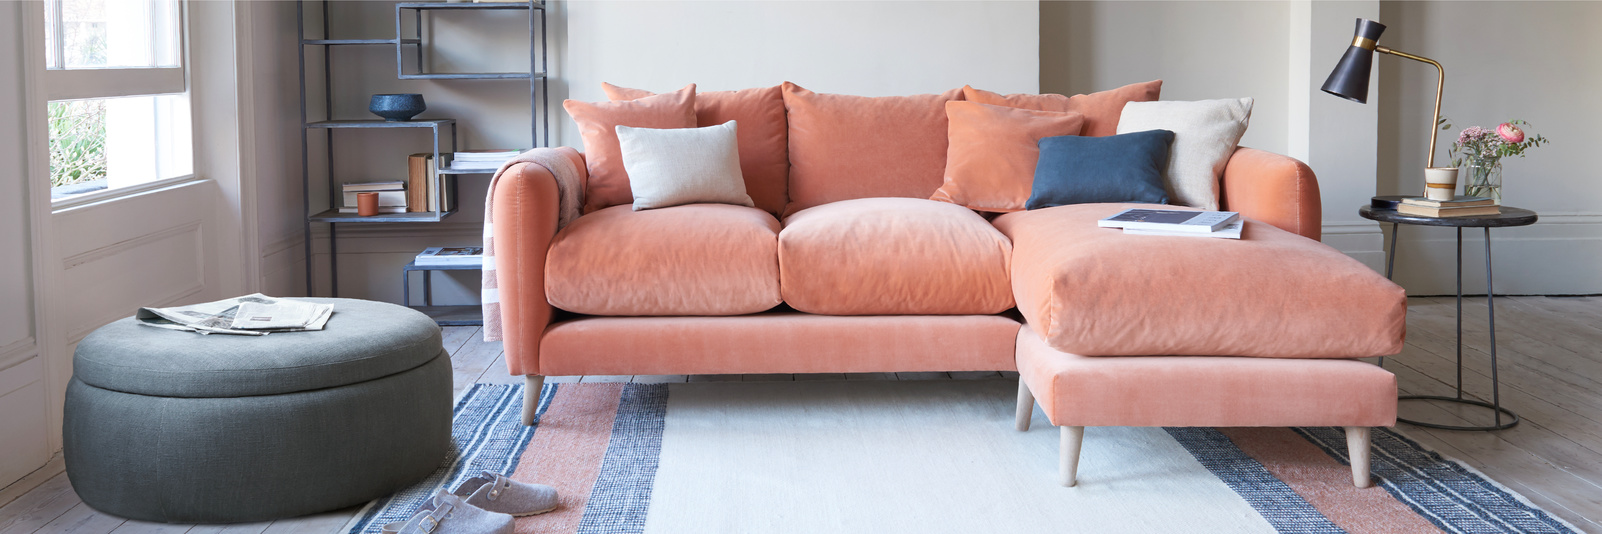 Squishmeister chaise sofa